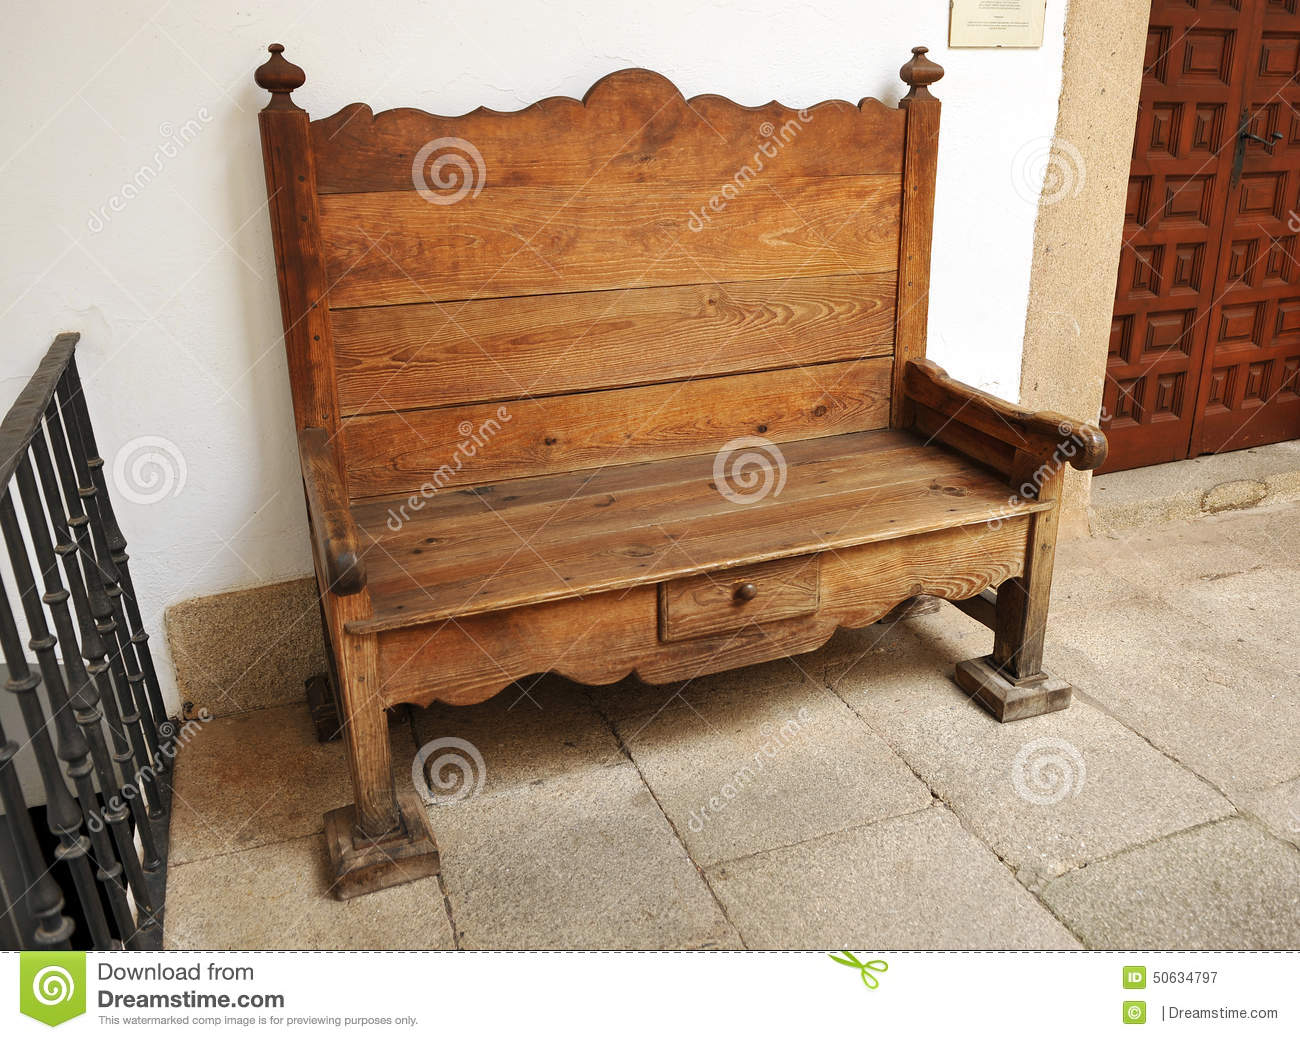 Old wooden bench spain stock photo image 50634797 - Resource furniture espana ...